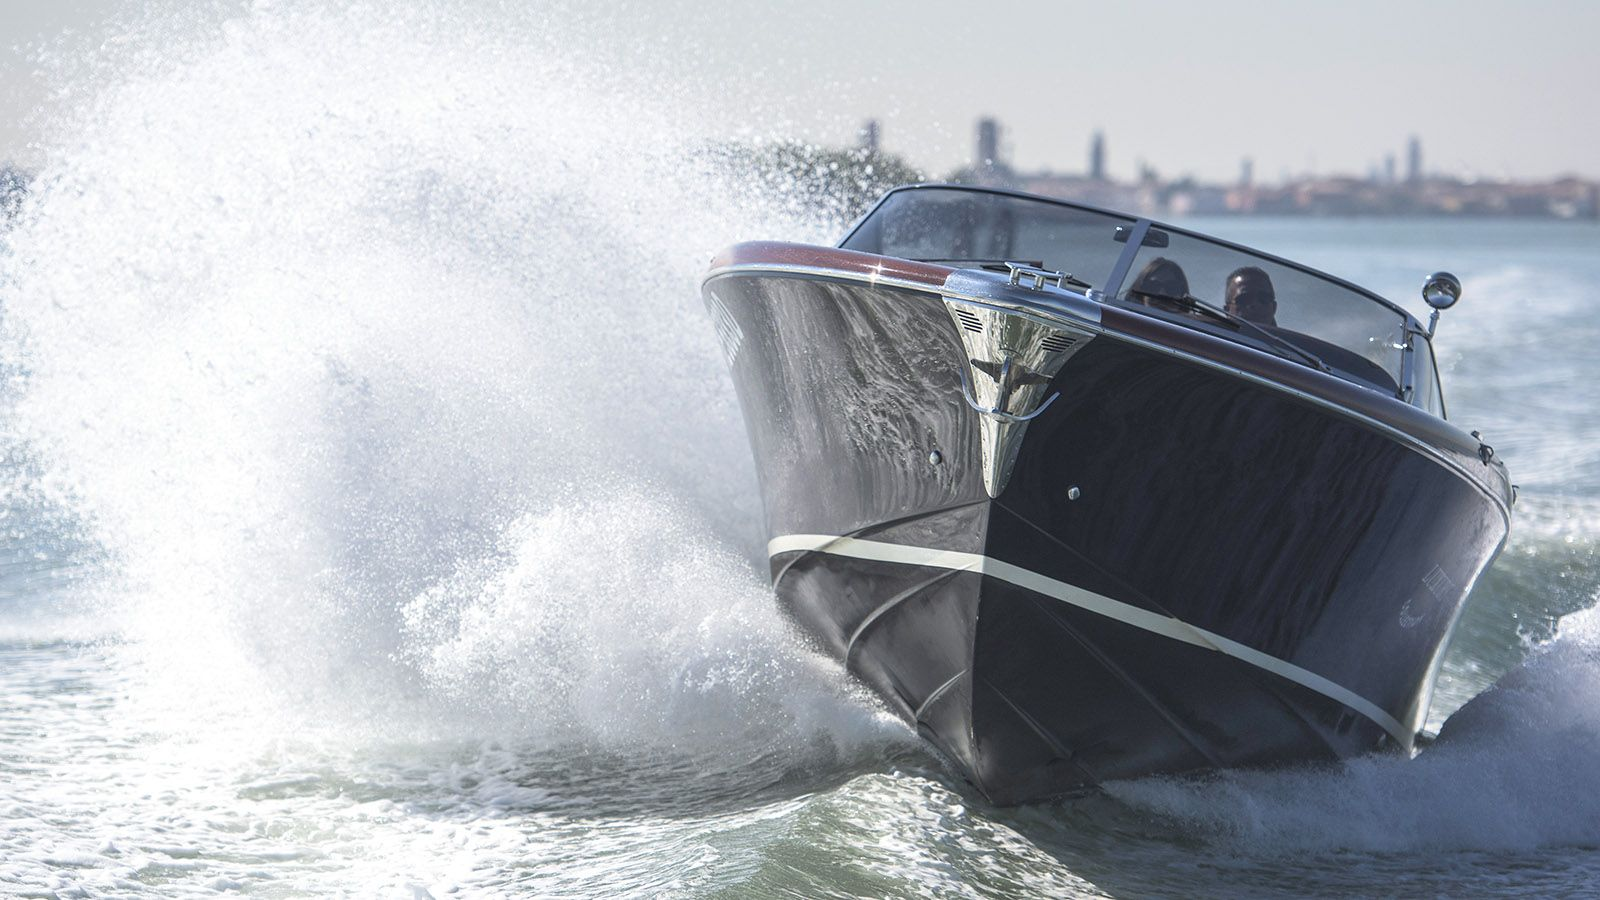 Riva Yacht, The Gritti Palace